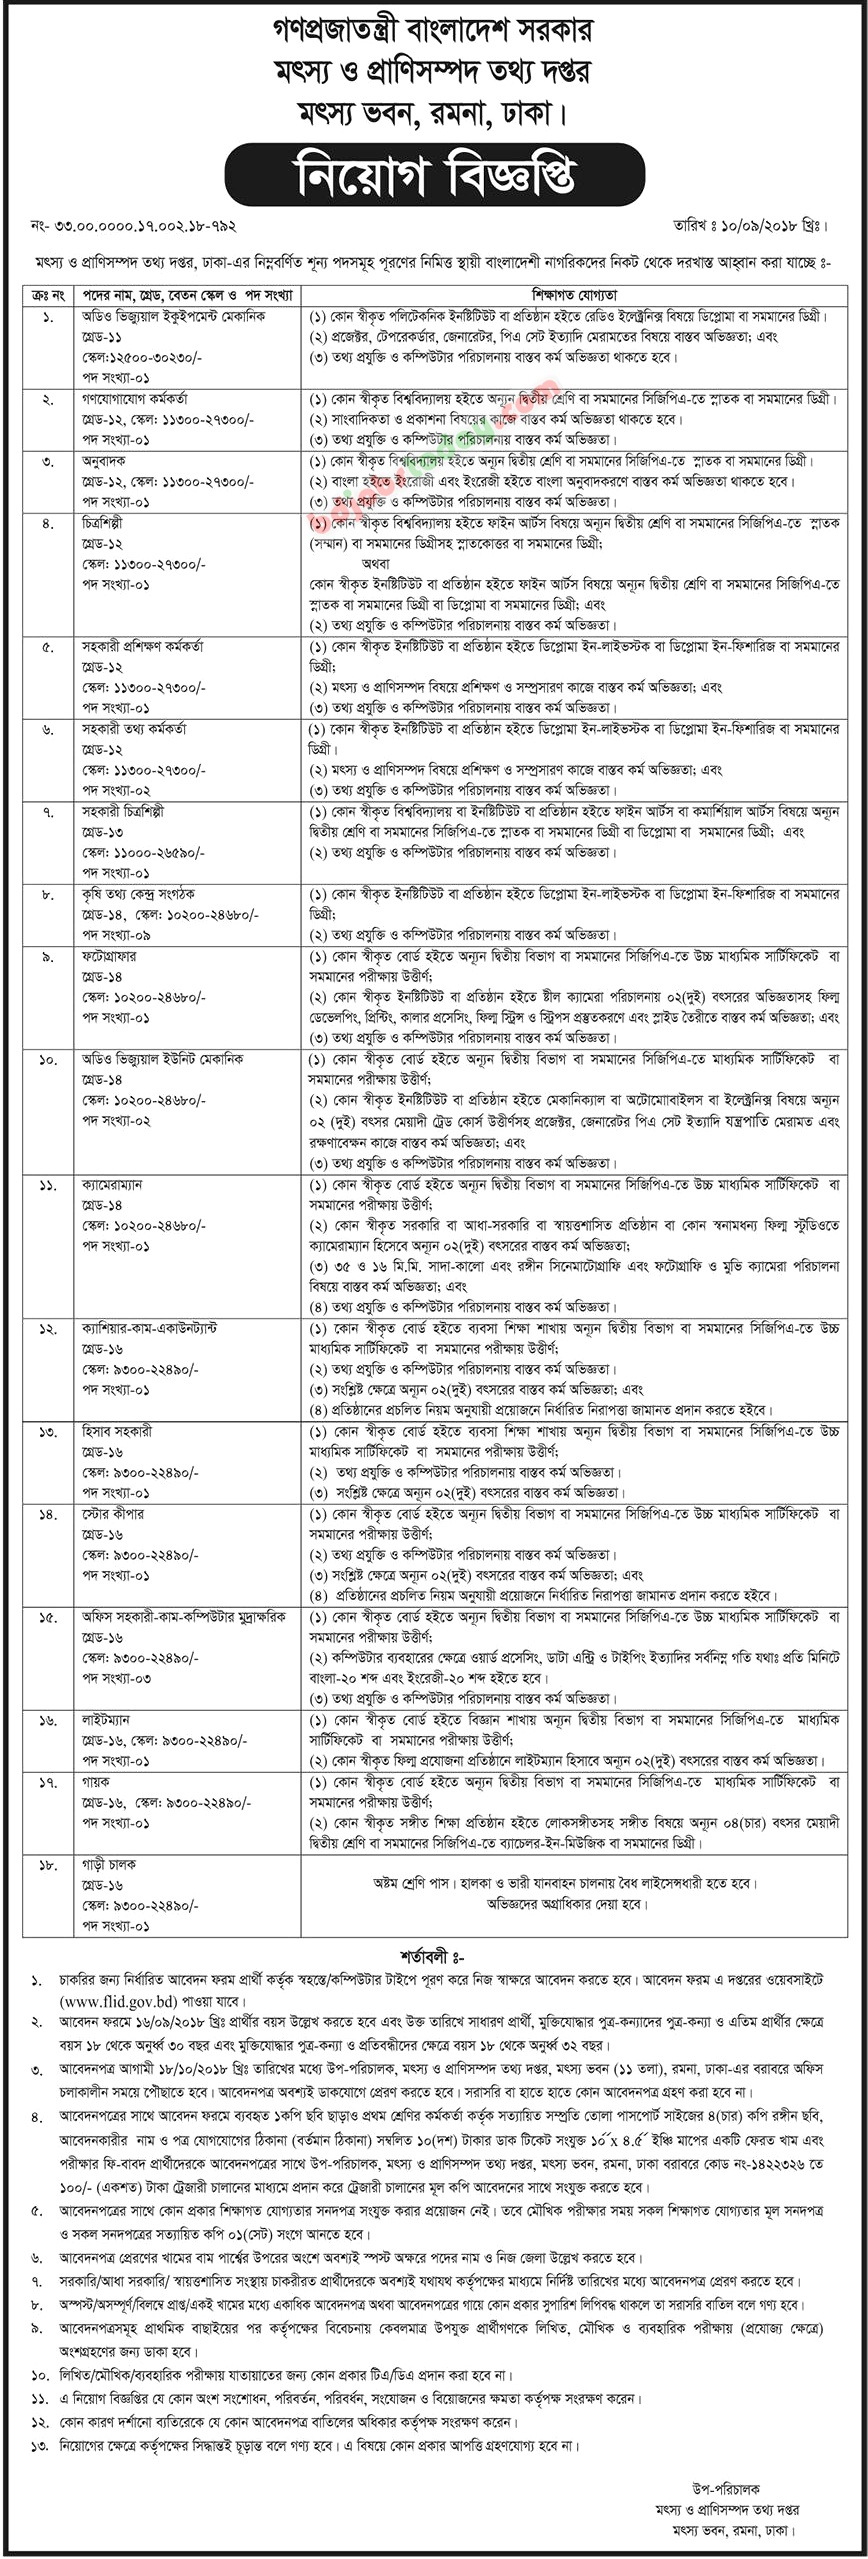 Fisheries and Livestock Information Department jobs